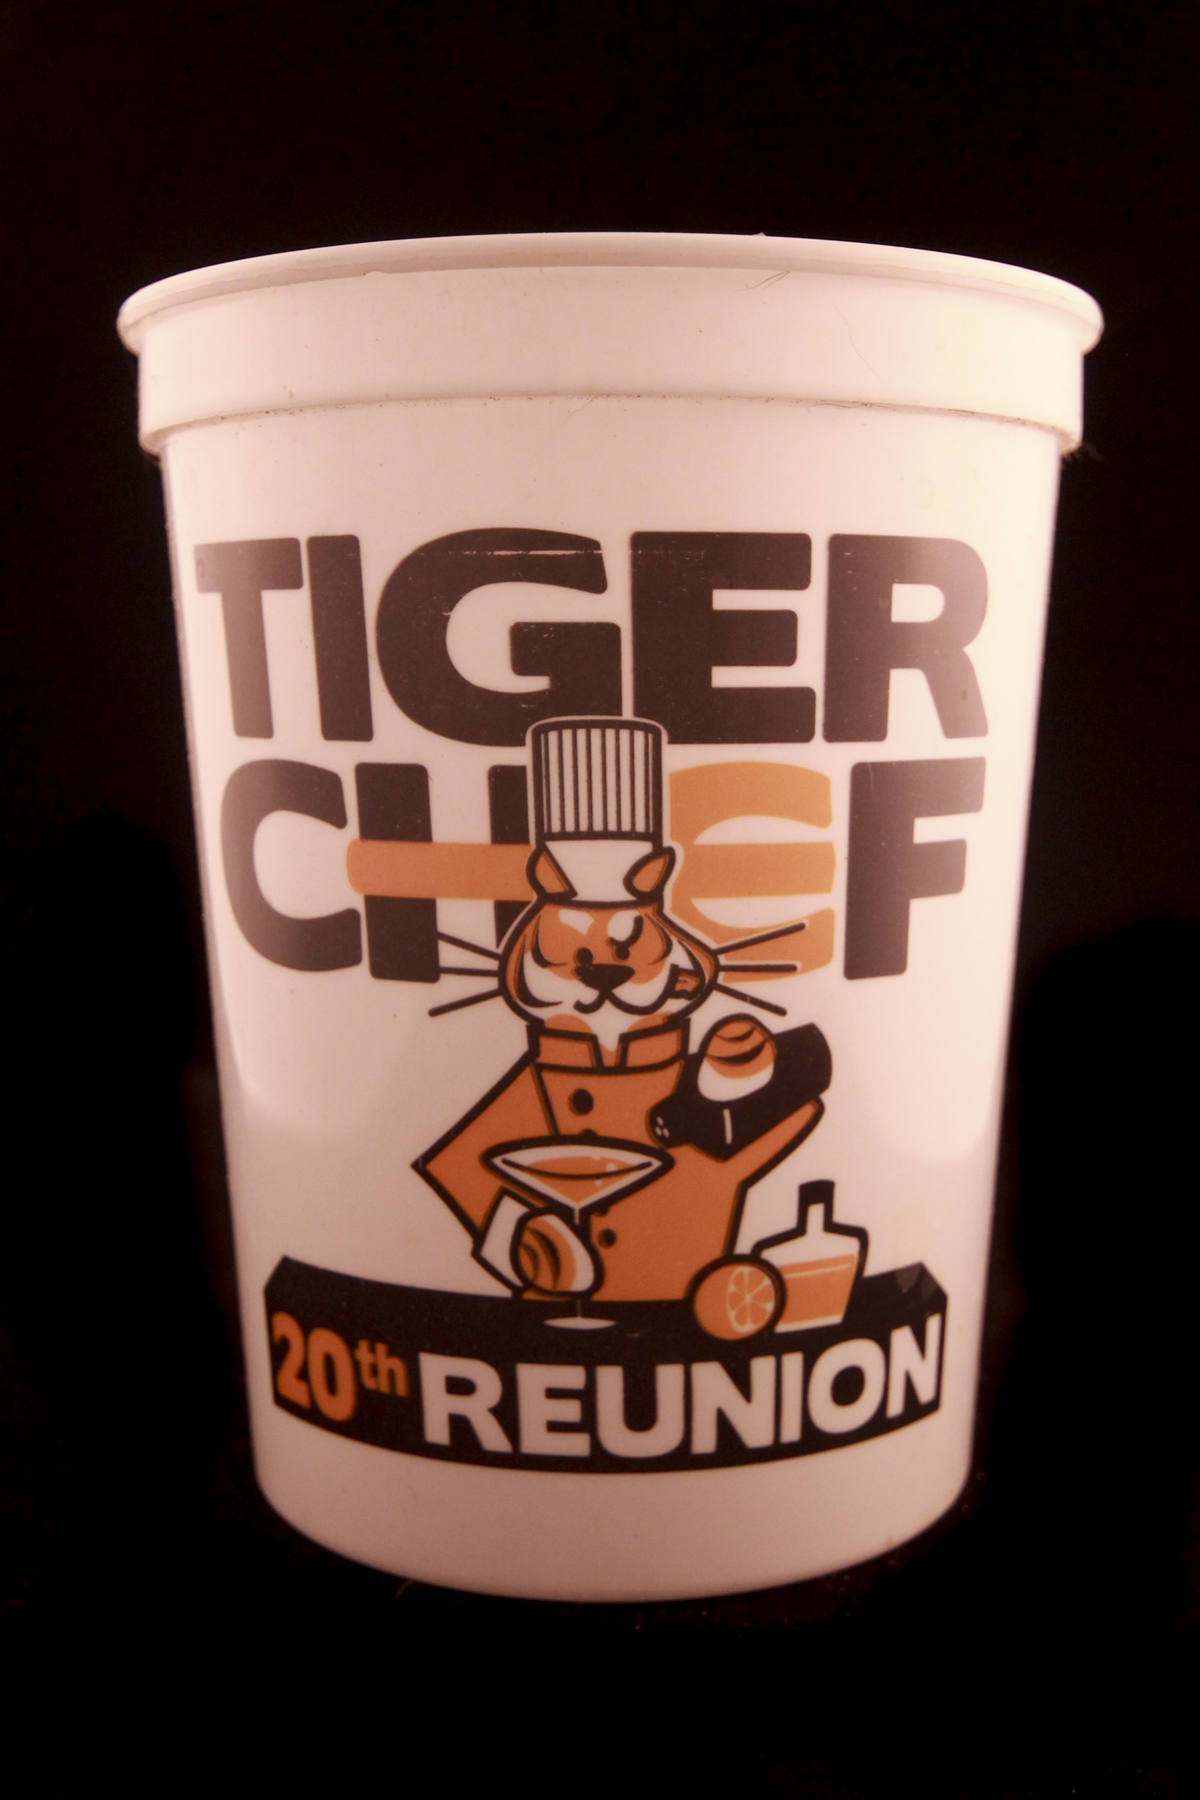 Beer Cup 1992 20th Reunion